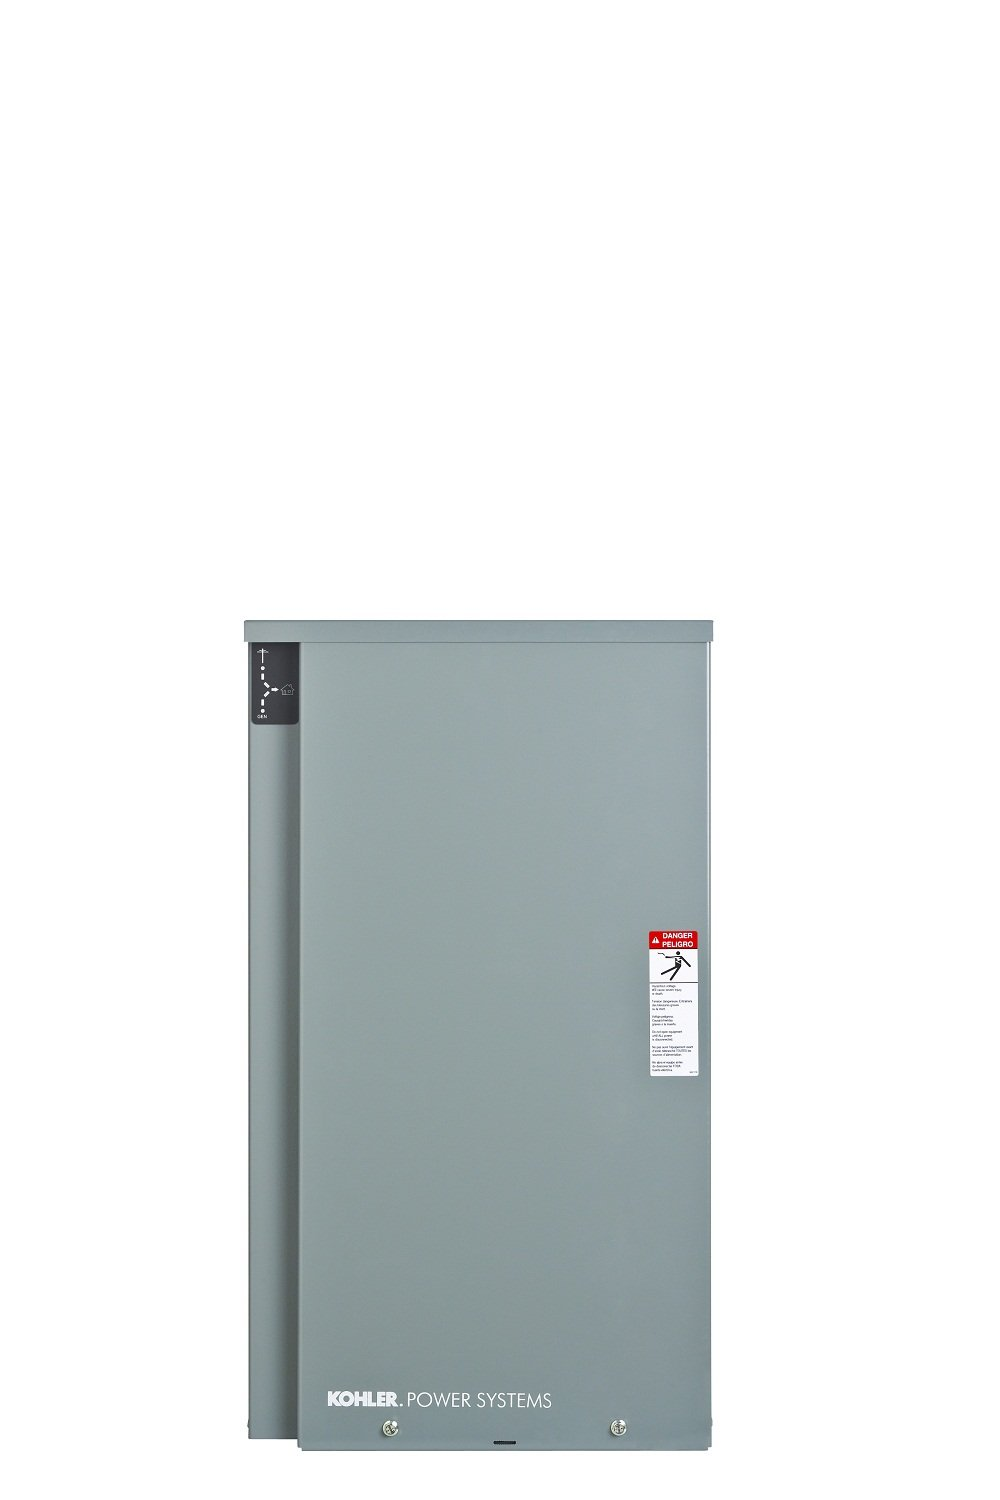 Kohler RXT-JFNC-200ASE 200 Amp Whole-House Indoor/Outdoor Service-Entrance-Rated Automatic Transfer Switch by Kohler